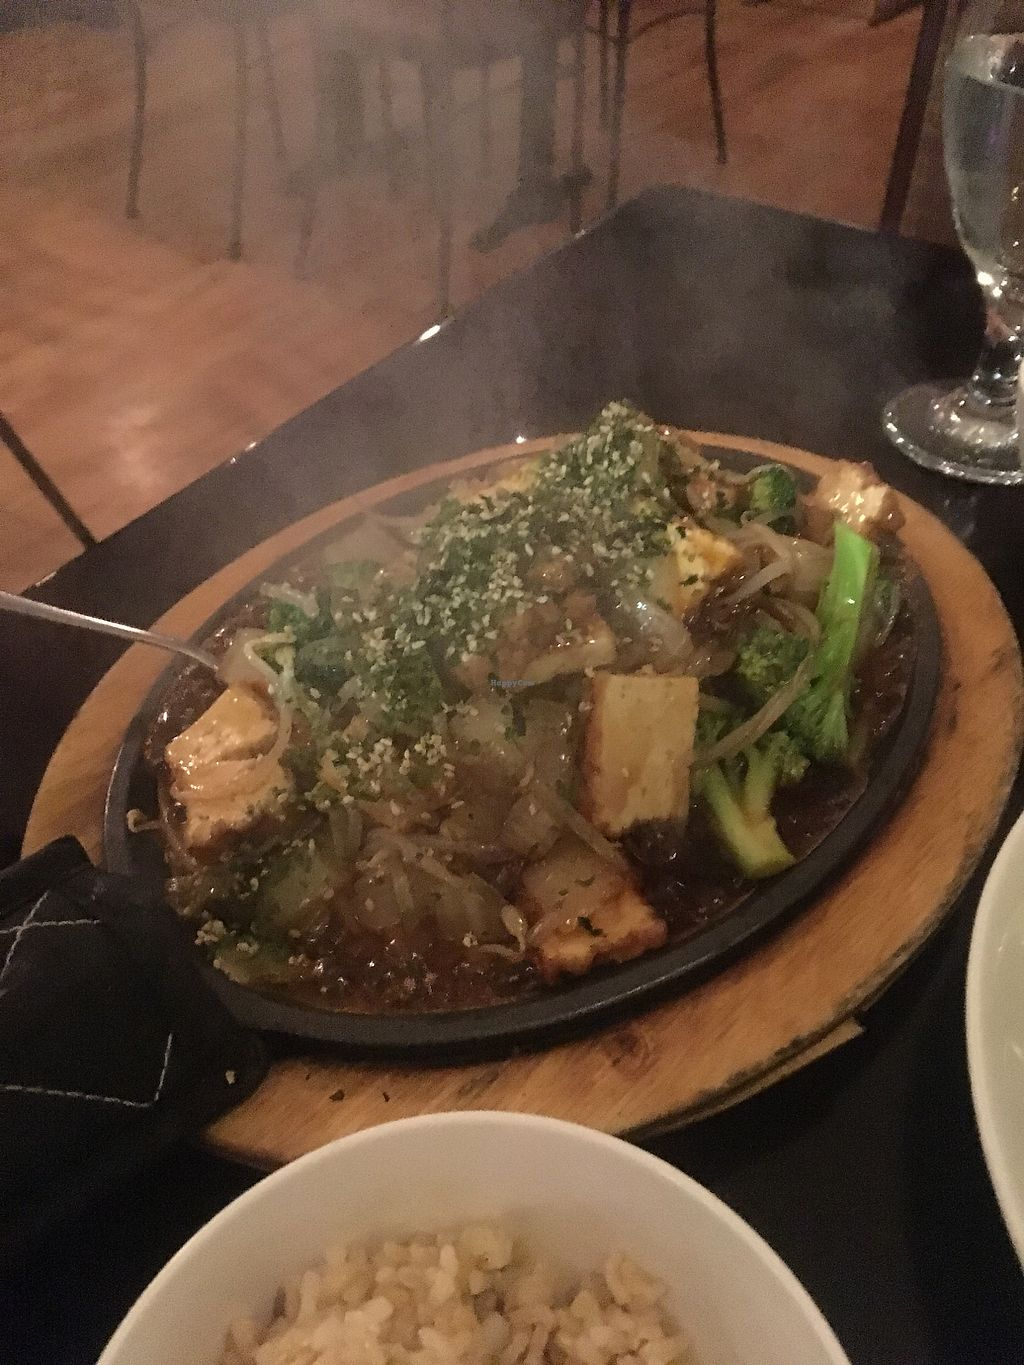 """Photo of Zhu's Pan-Asian Vegan Cuisine  by <a href=""""/members/profile/770veg"""">770veg</a> <br/>Sizzling tofu teriyaki! <br/> December 14, 2017  - <a href='/contact/abuse/image/61169/335371'>Report</a>"""